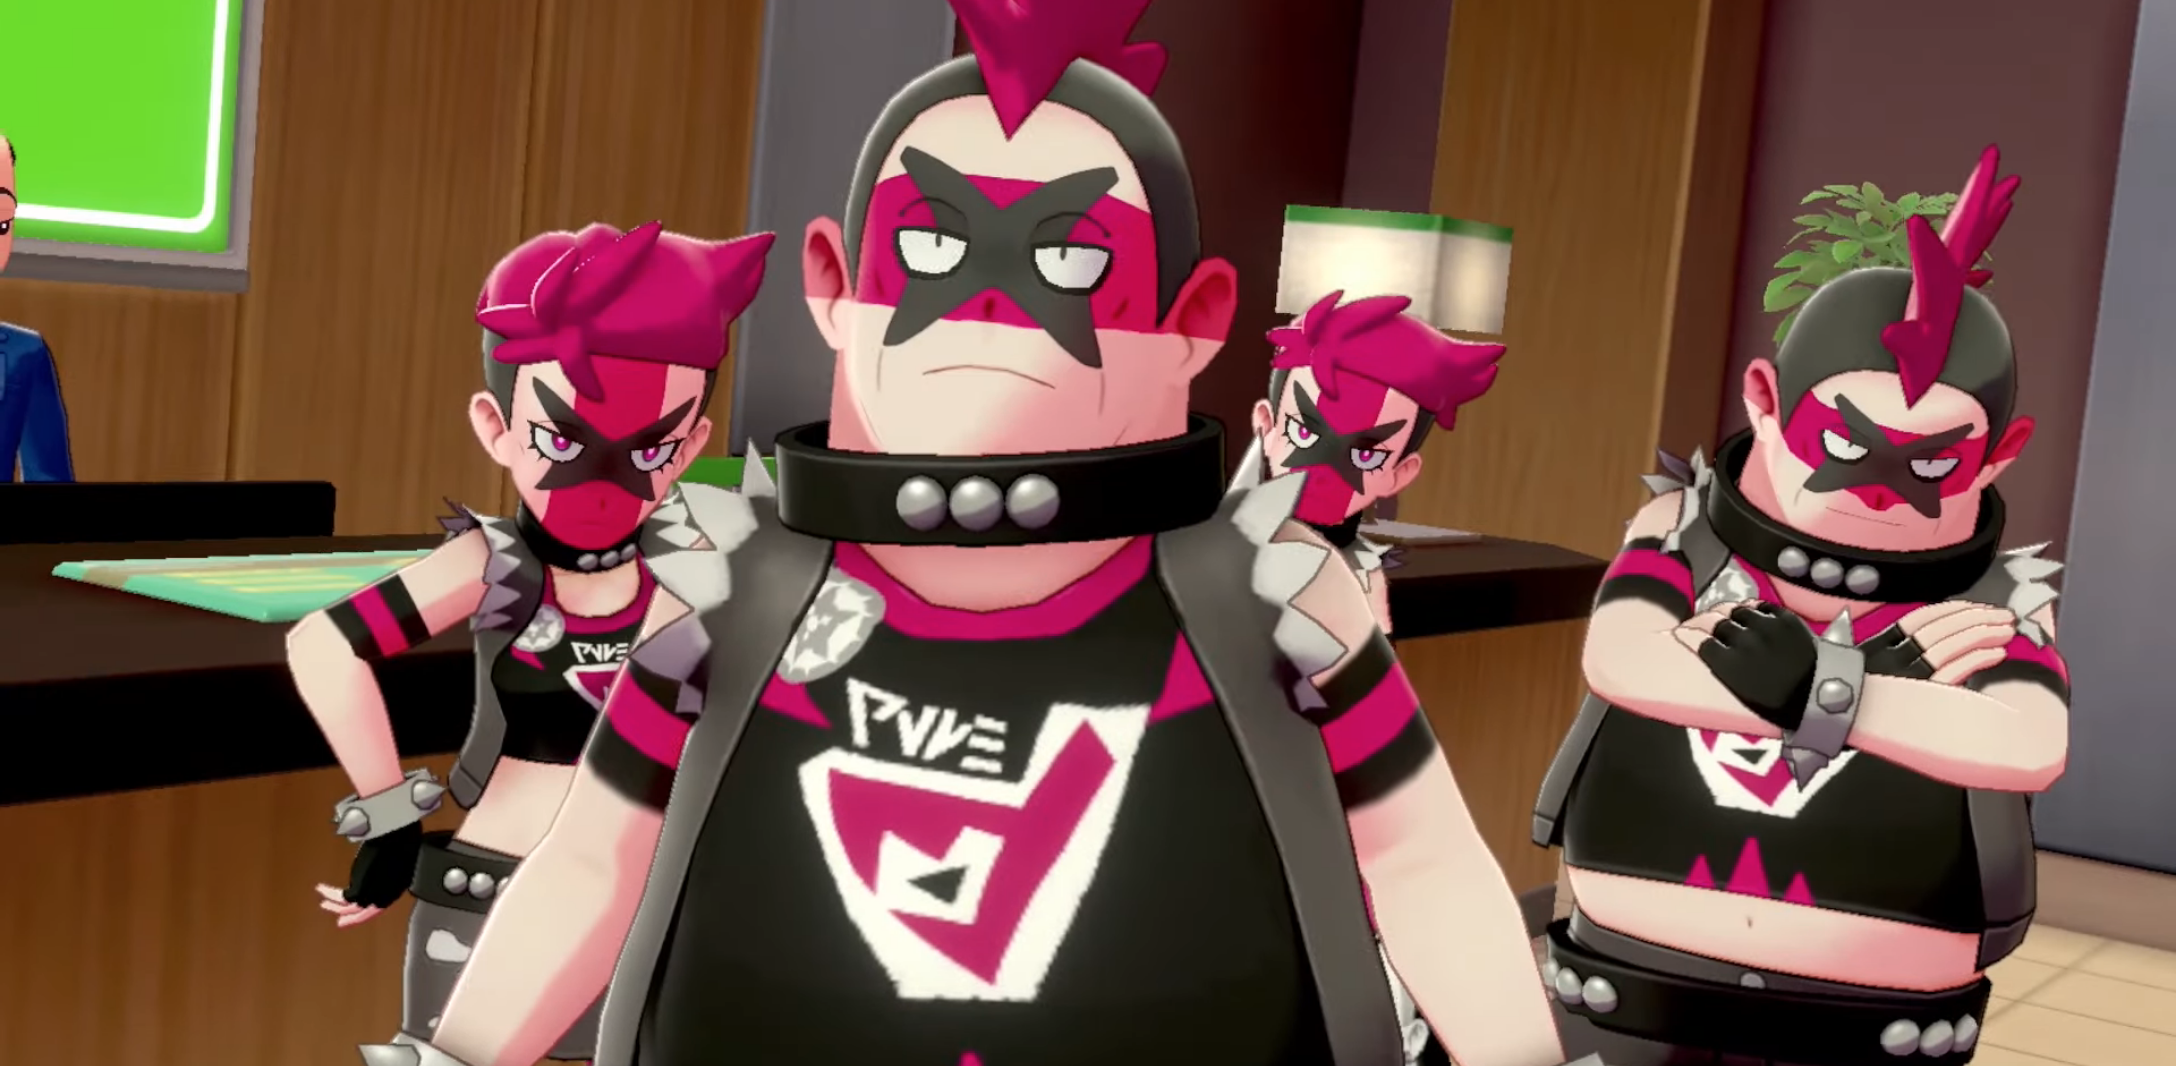 Latest Pokémon Sword And Shield Trailer Reveals Villain Team And New Galarian Forms